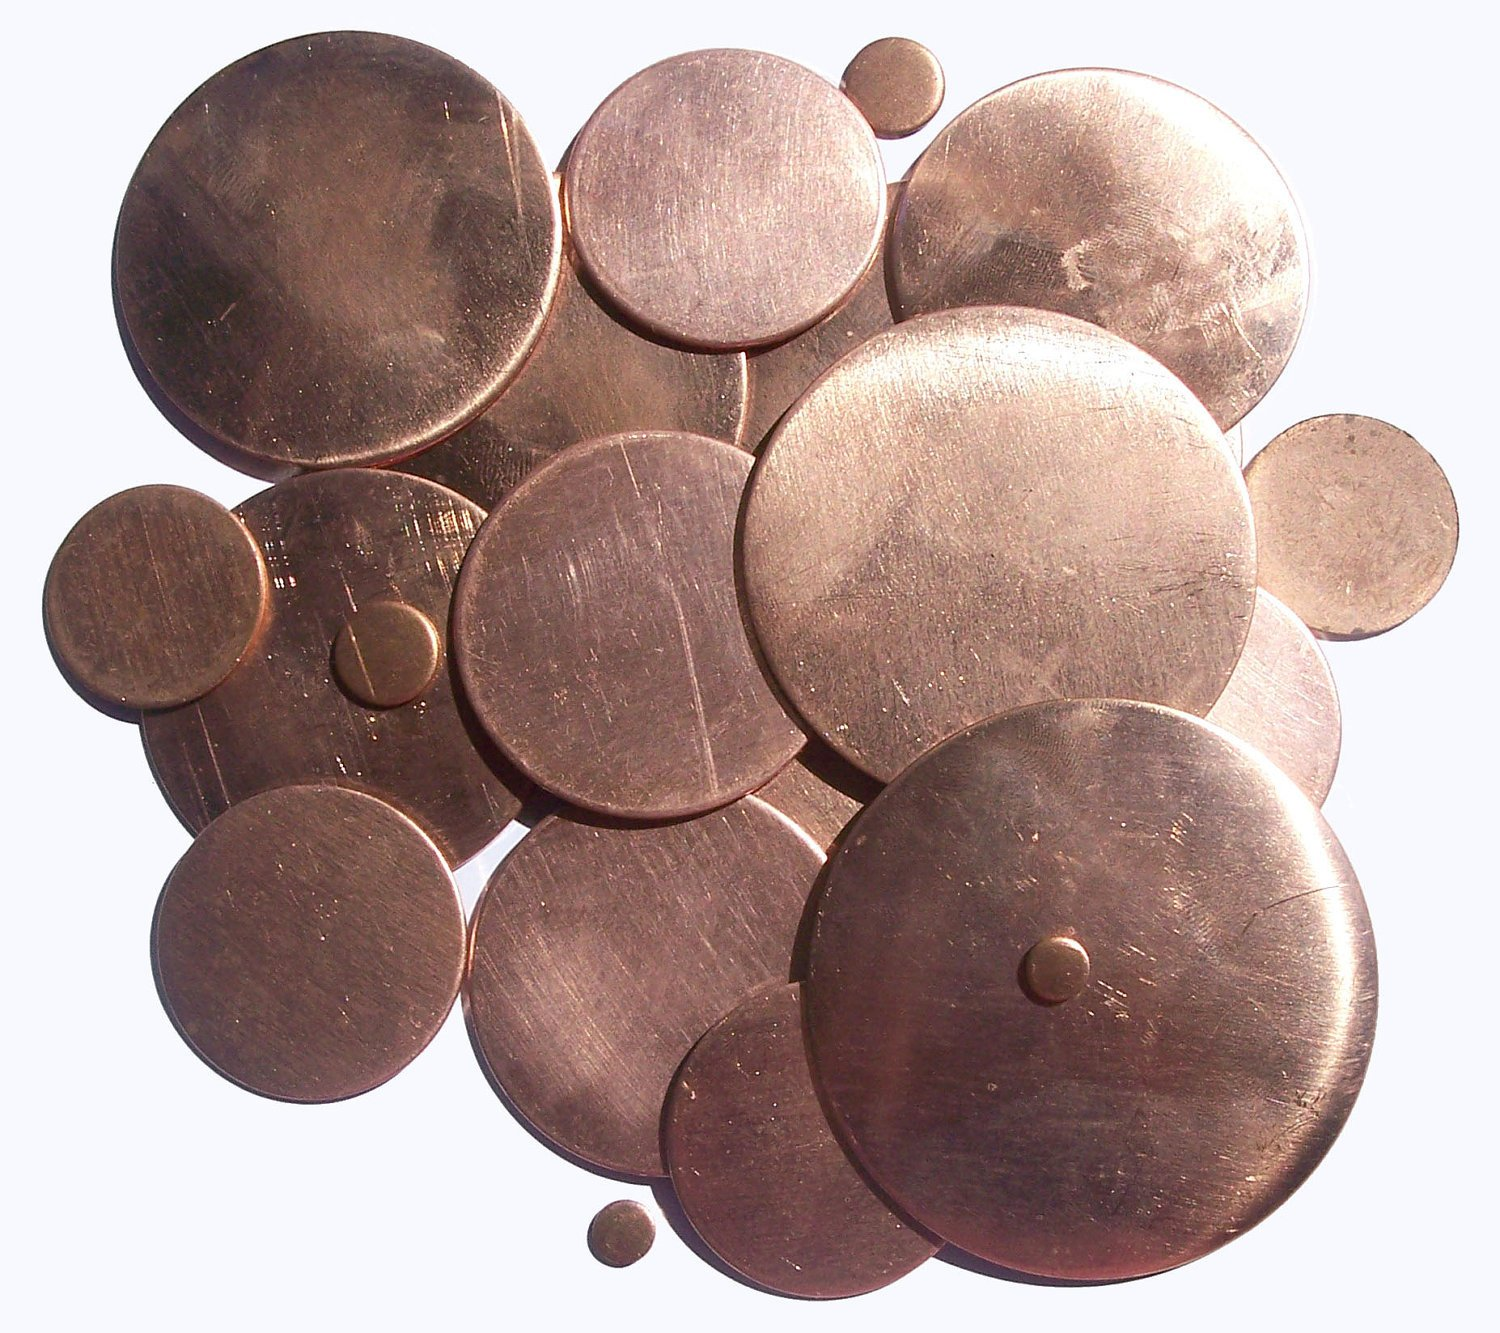 Circle Copper 22g 12mm Blank Cutout for Enameling Stamping Texturing Blanks - 1/2 inch Disc